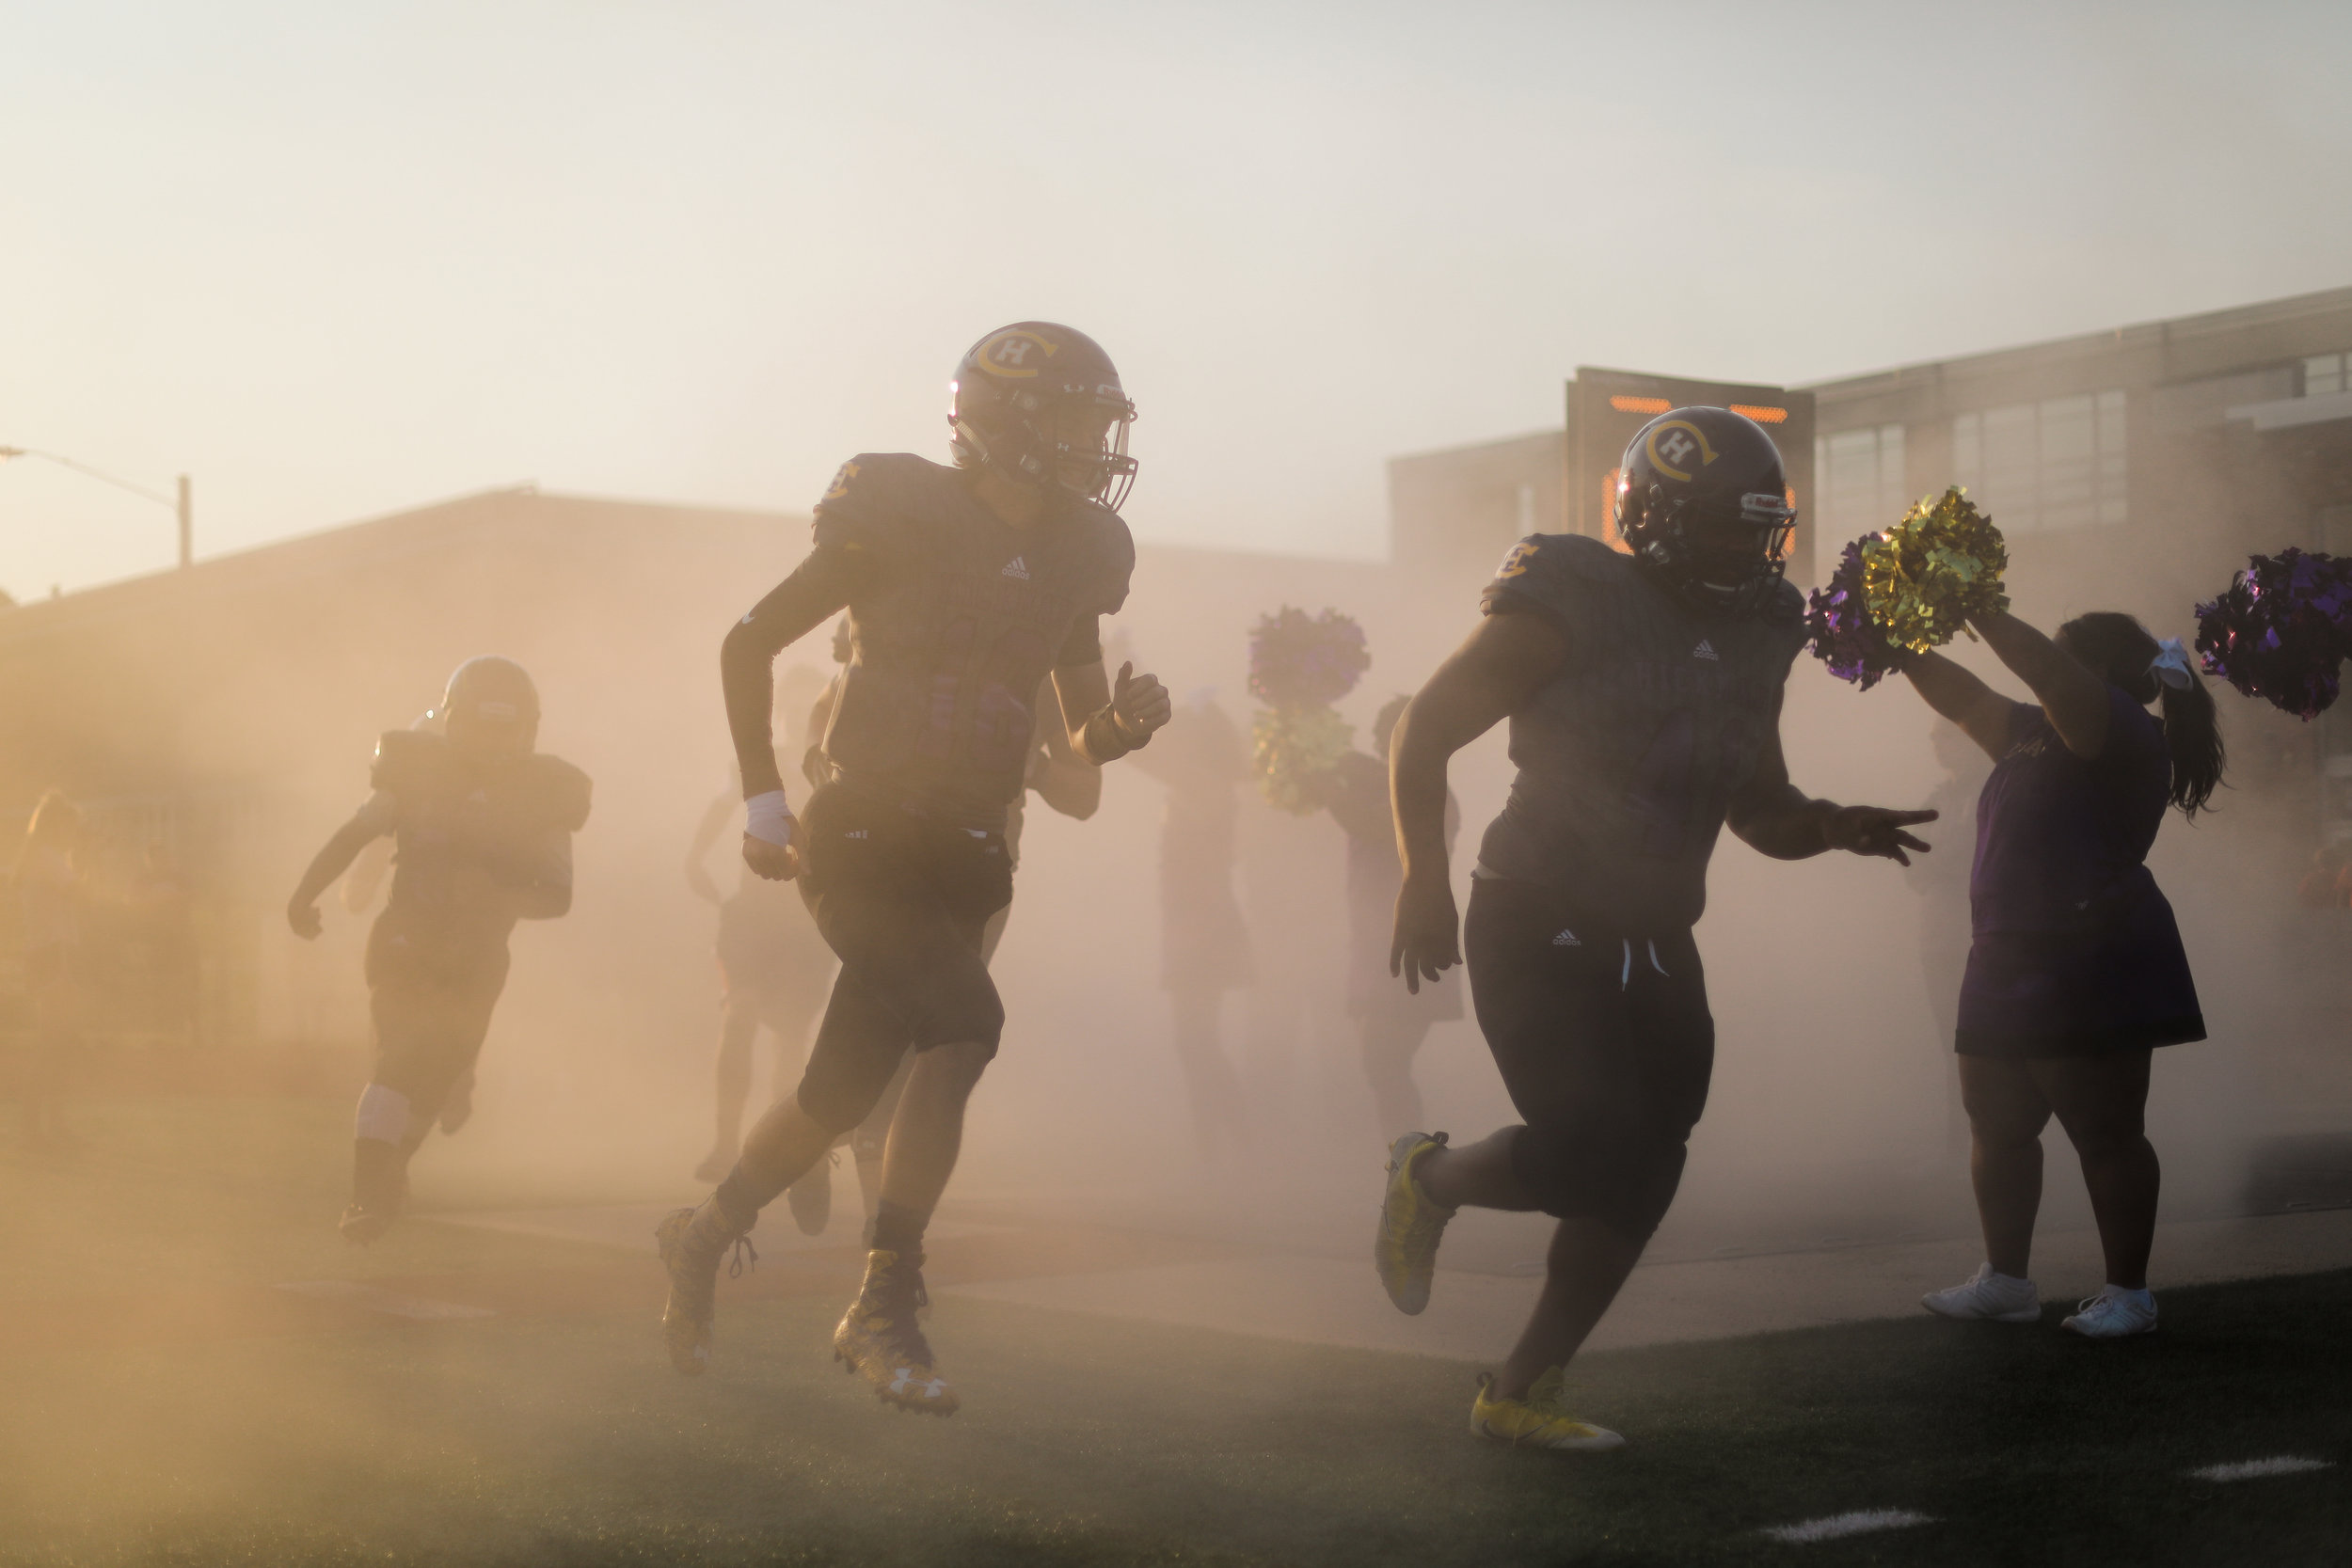 Hickman High School football players run through a cloud of smoke before the game against Jefferson City High School on Friday, Sept. 1, 2017, at Hickman in Columbia, MO. Hickman lost 28-9.